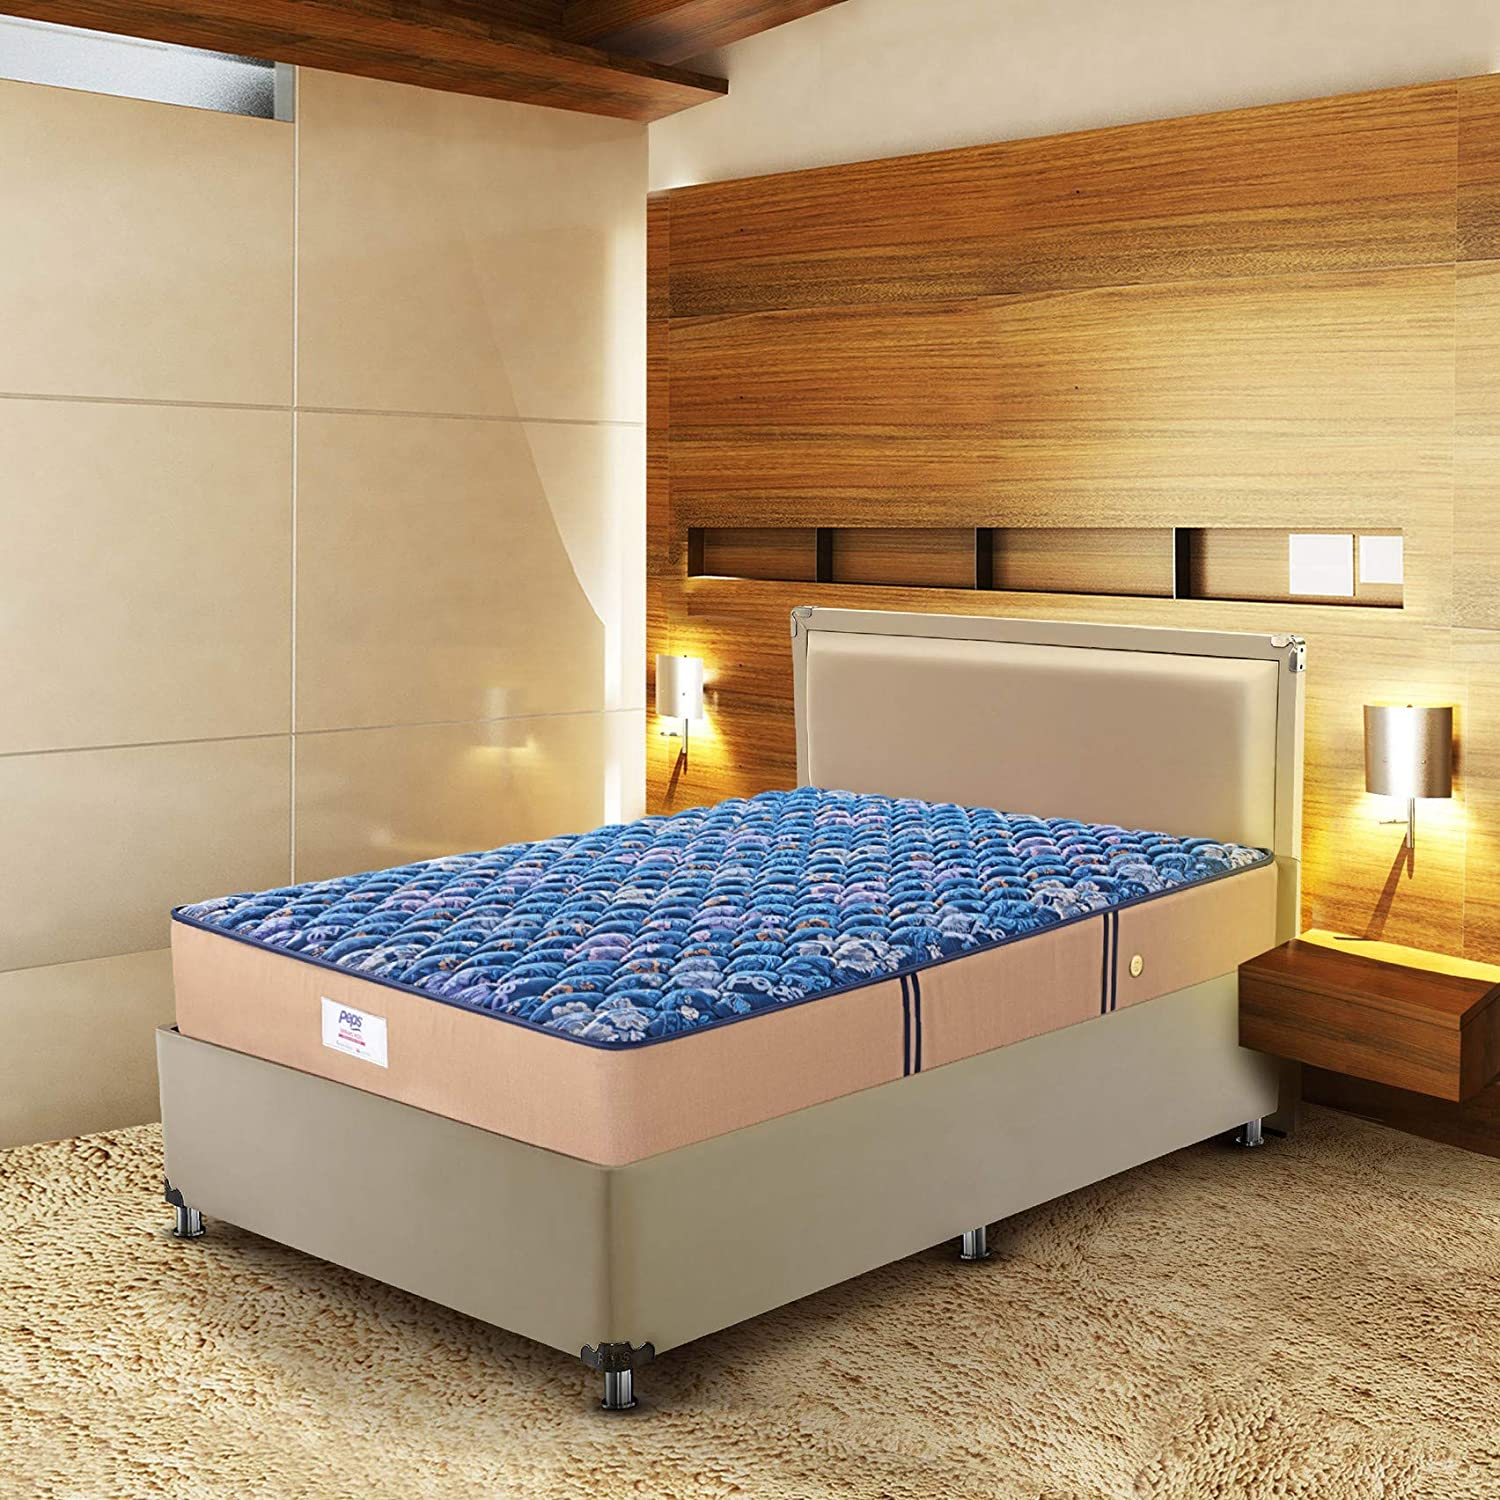 One of the Best mattress in top 5 best mattress under 15000 in India by grabitonce.in